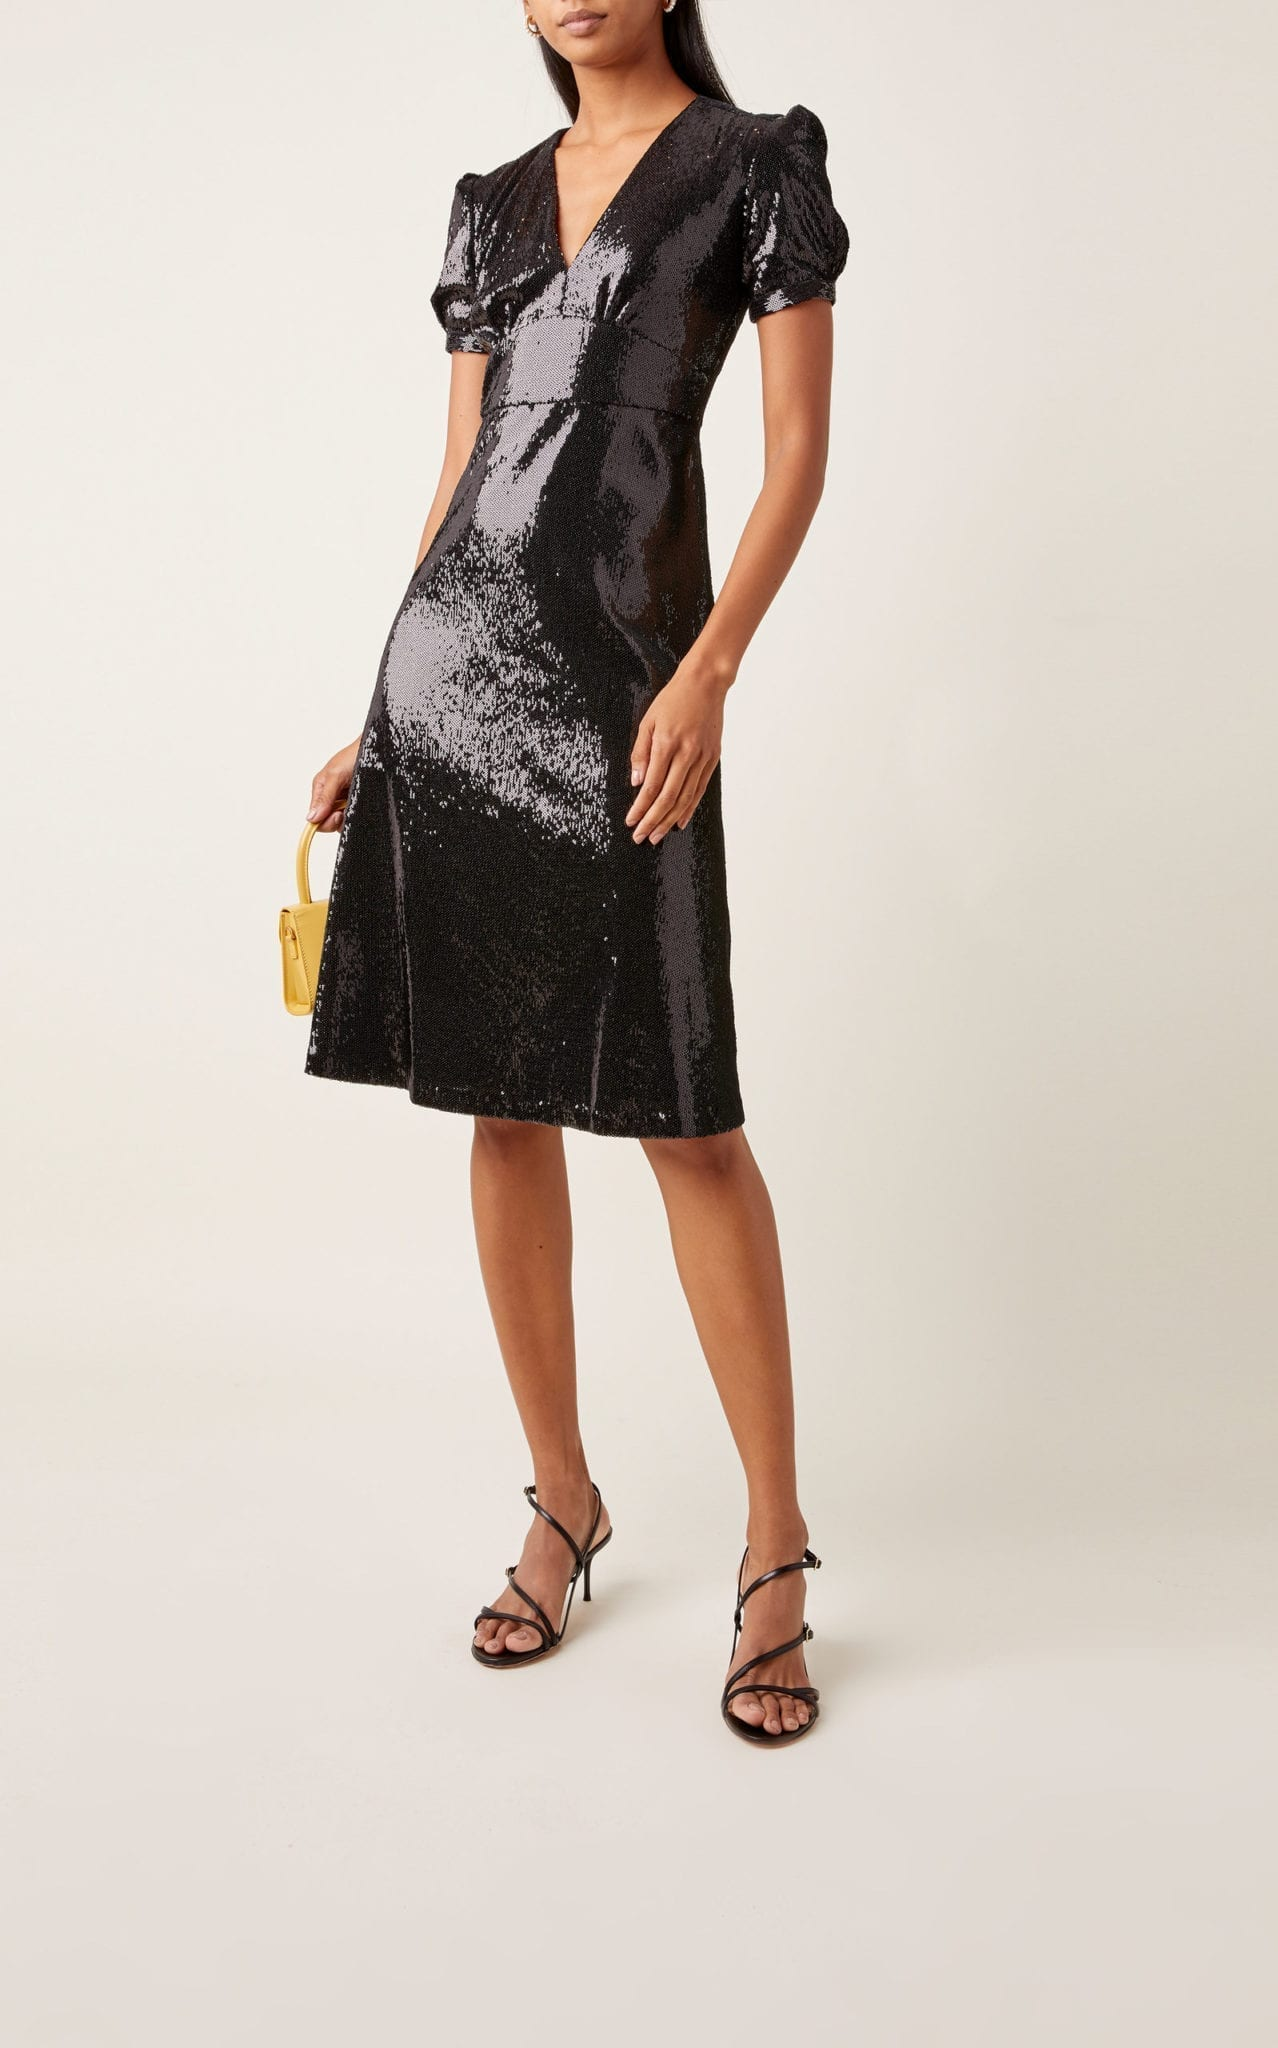 HVN Paula V-neck Sequined Dress